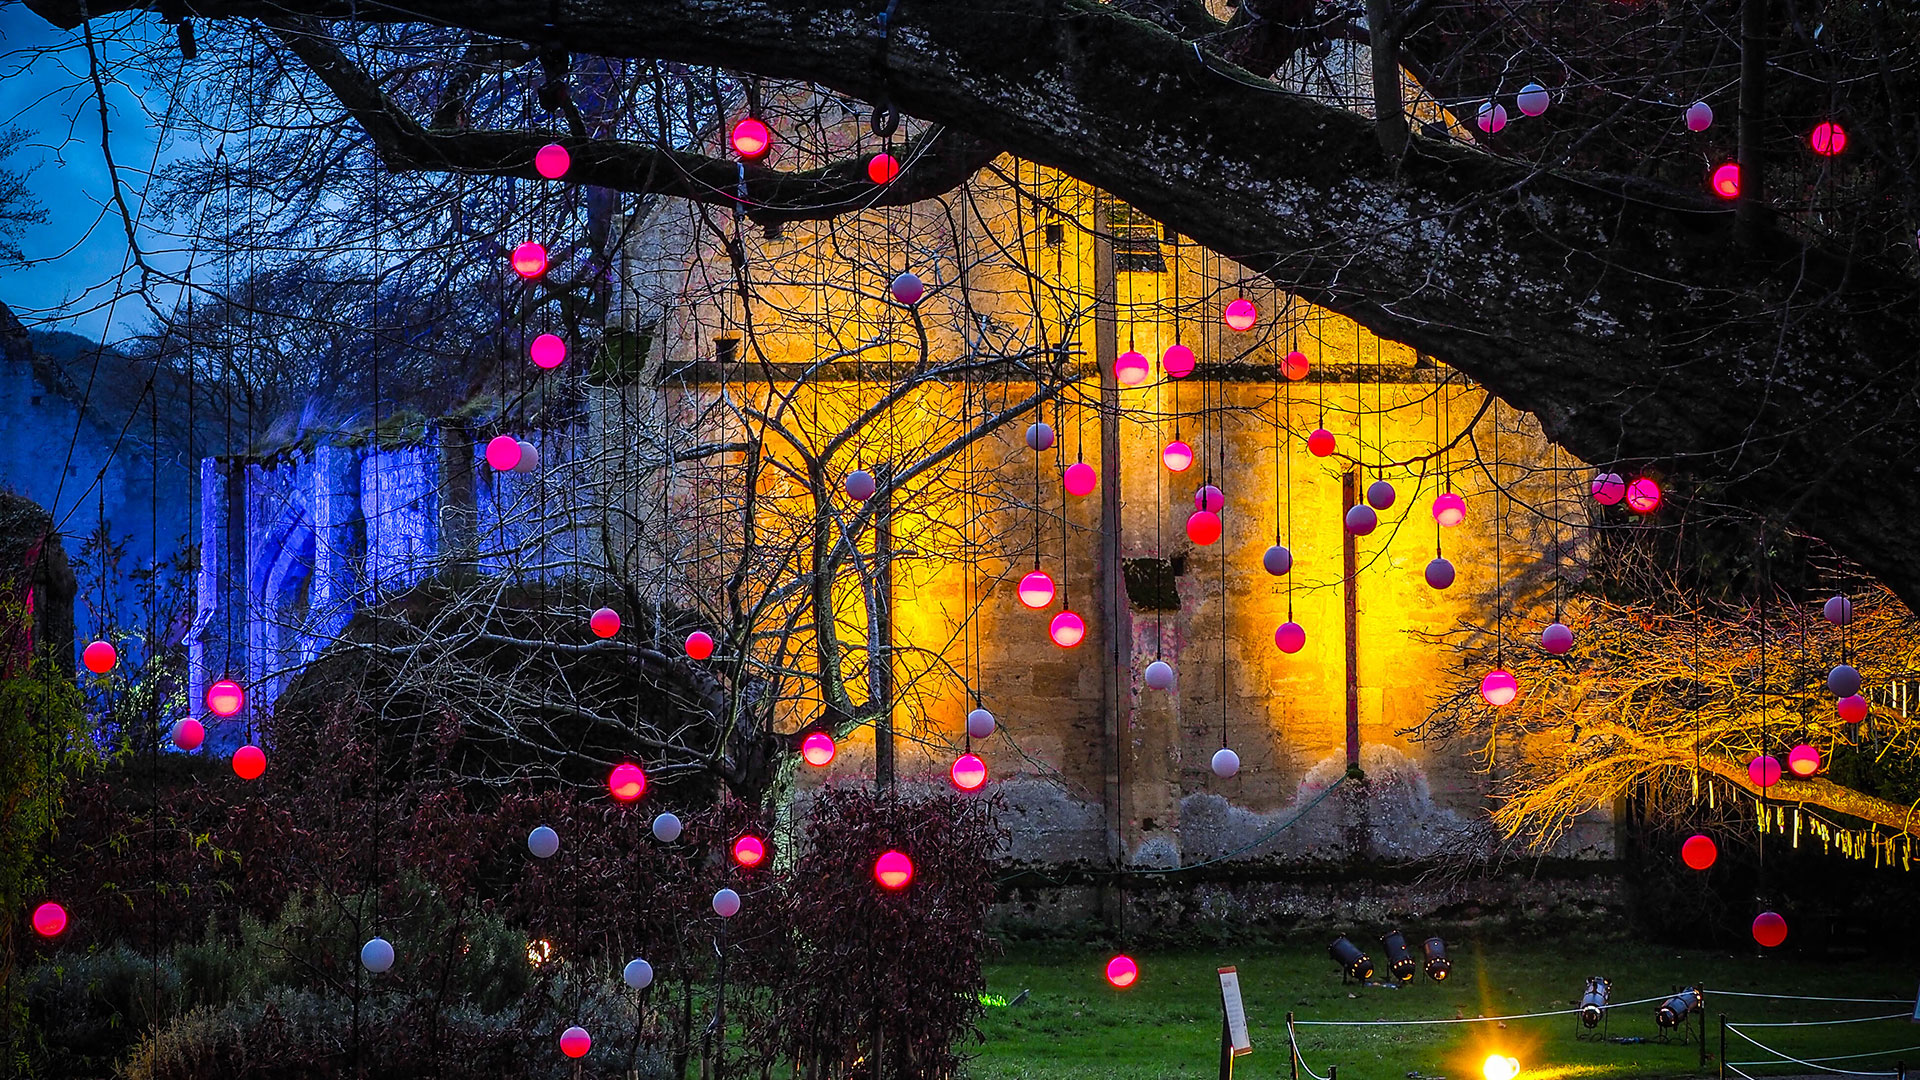 Spectacle-Of-Light-Twinkly-Lights.jpg